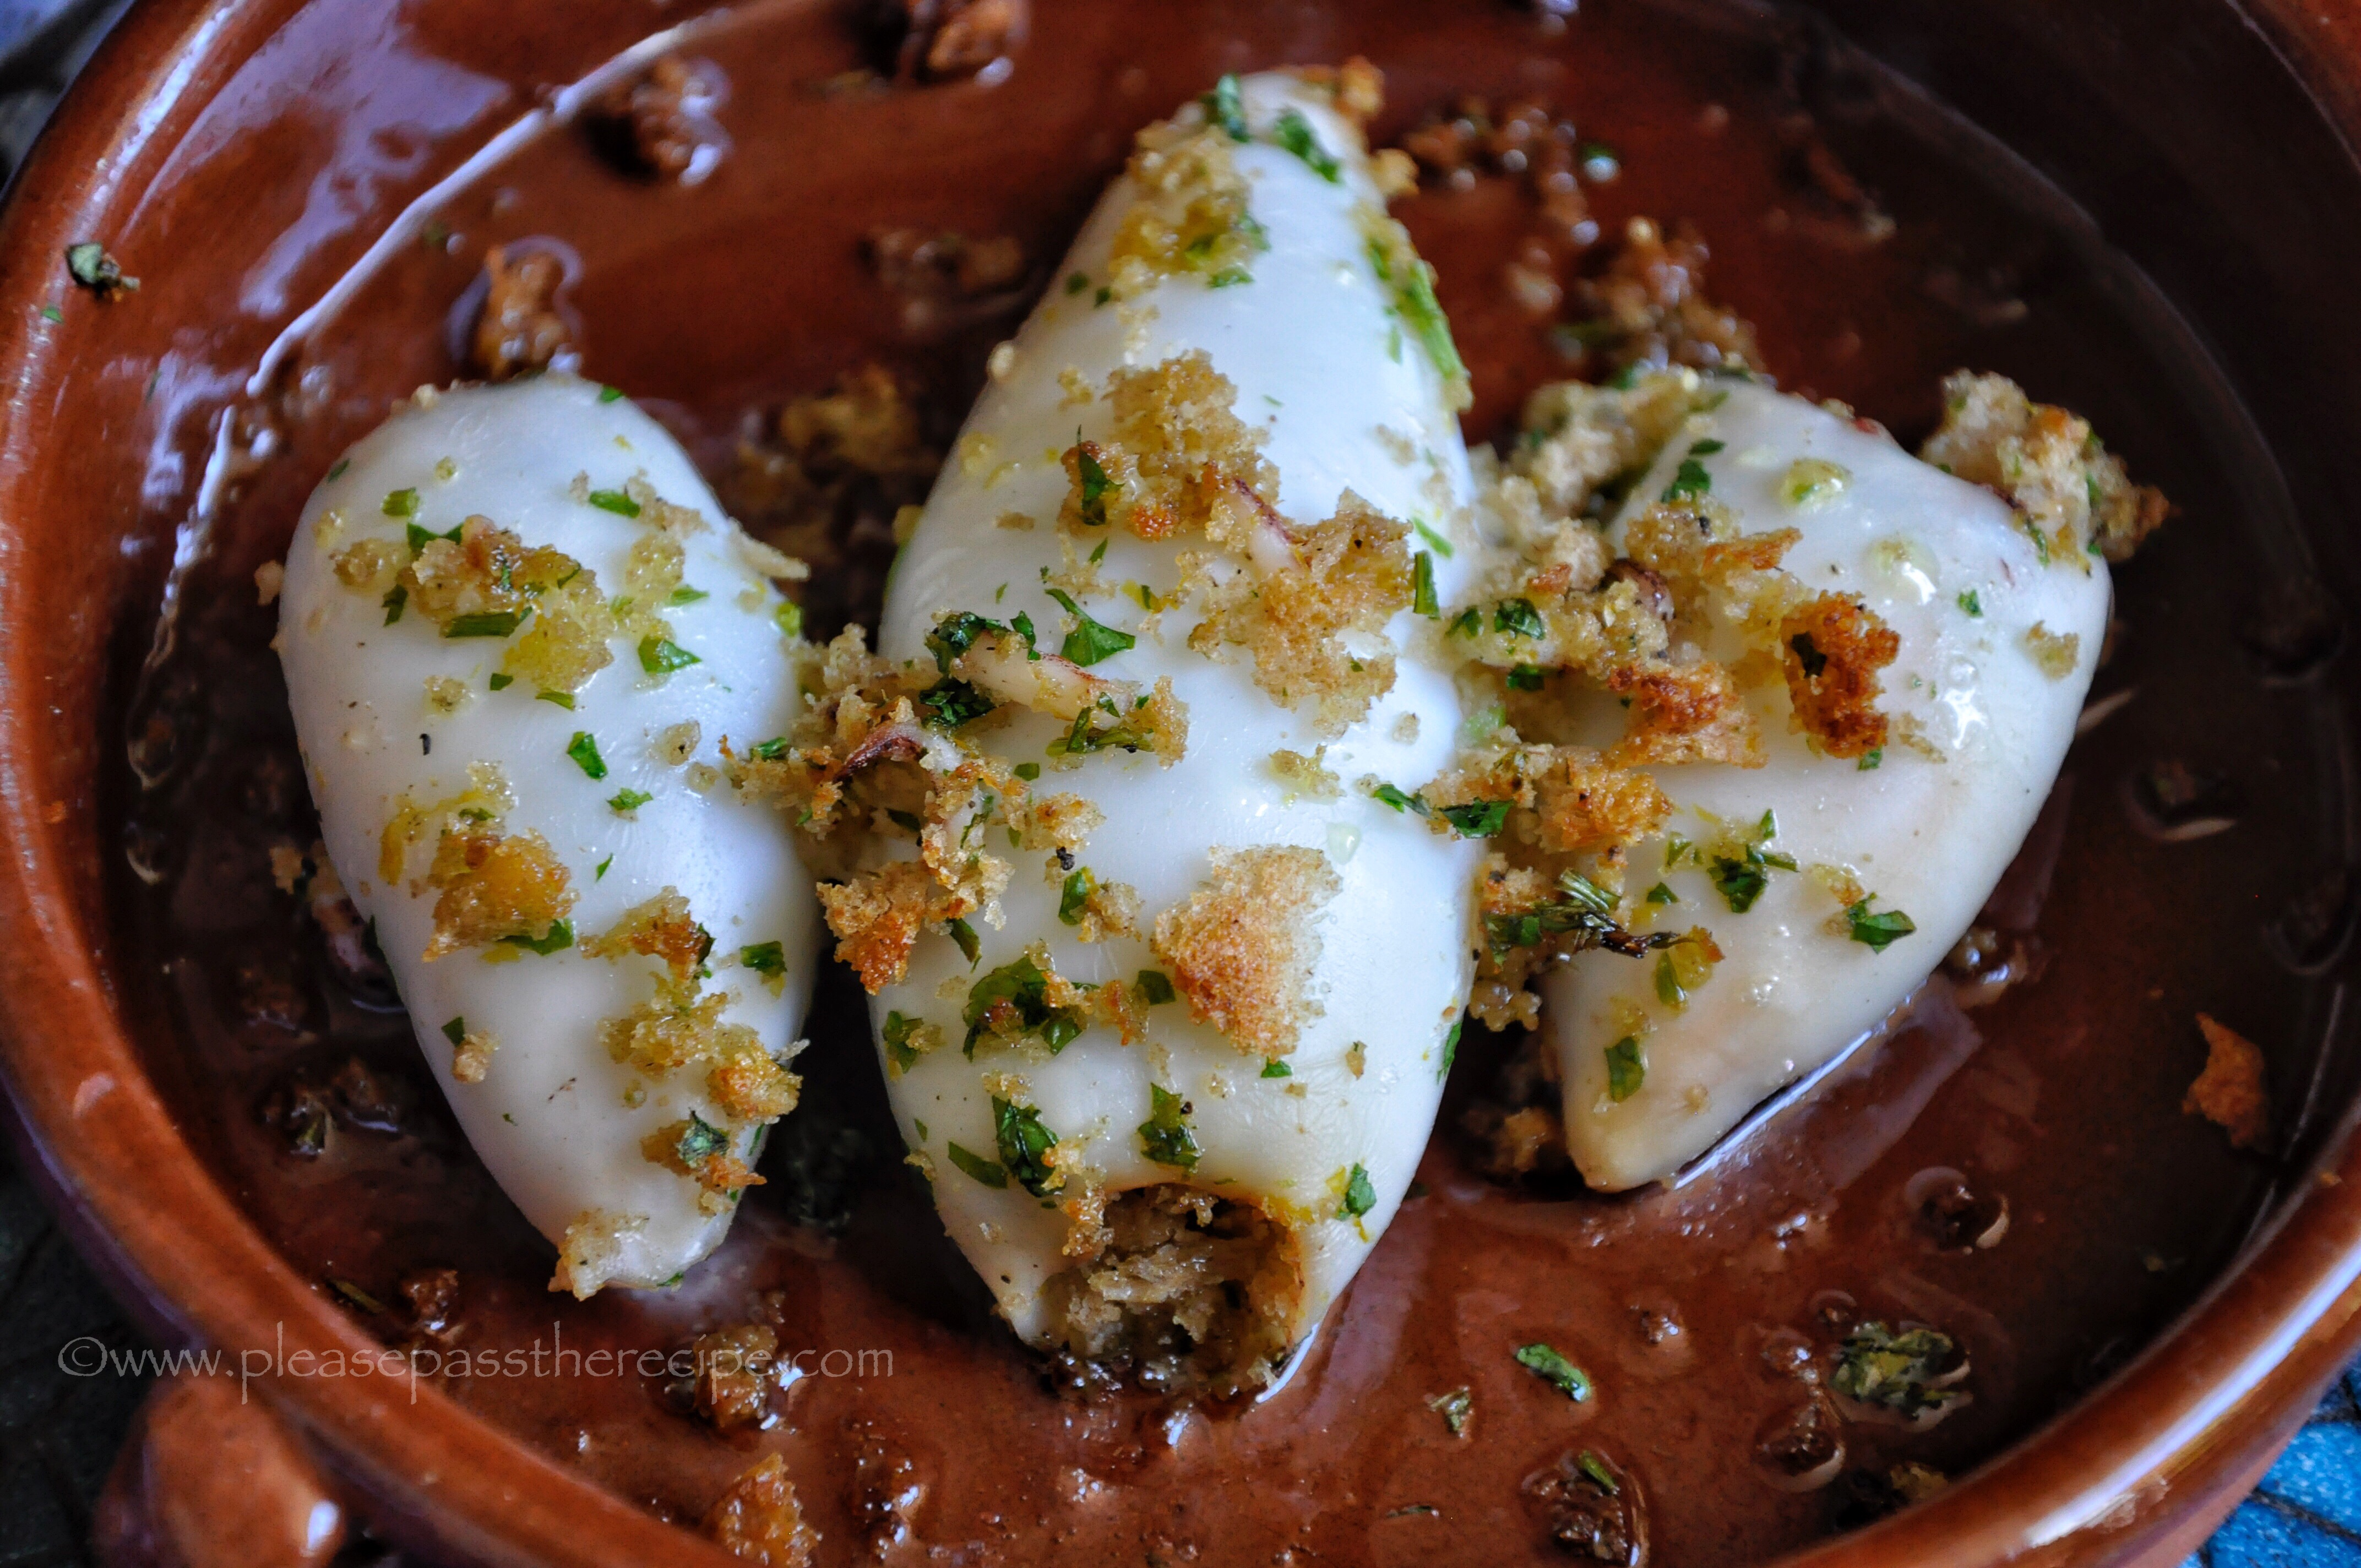 Stuffed squid in the oven: the best recipes 7